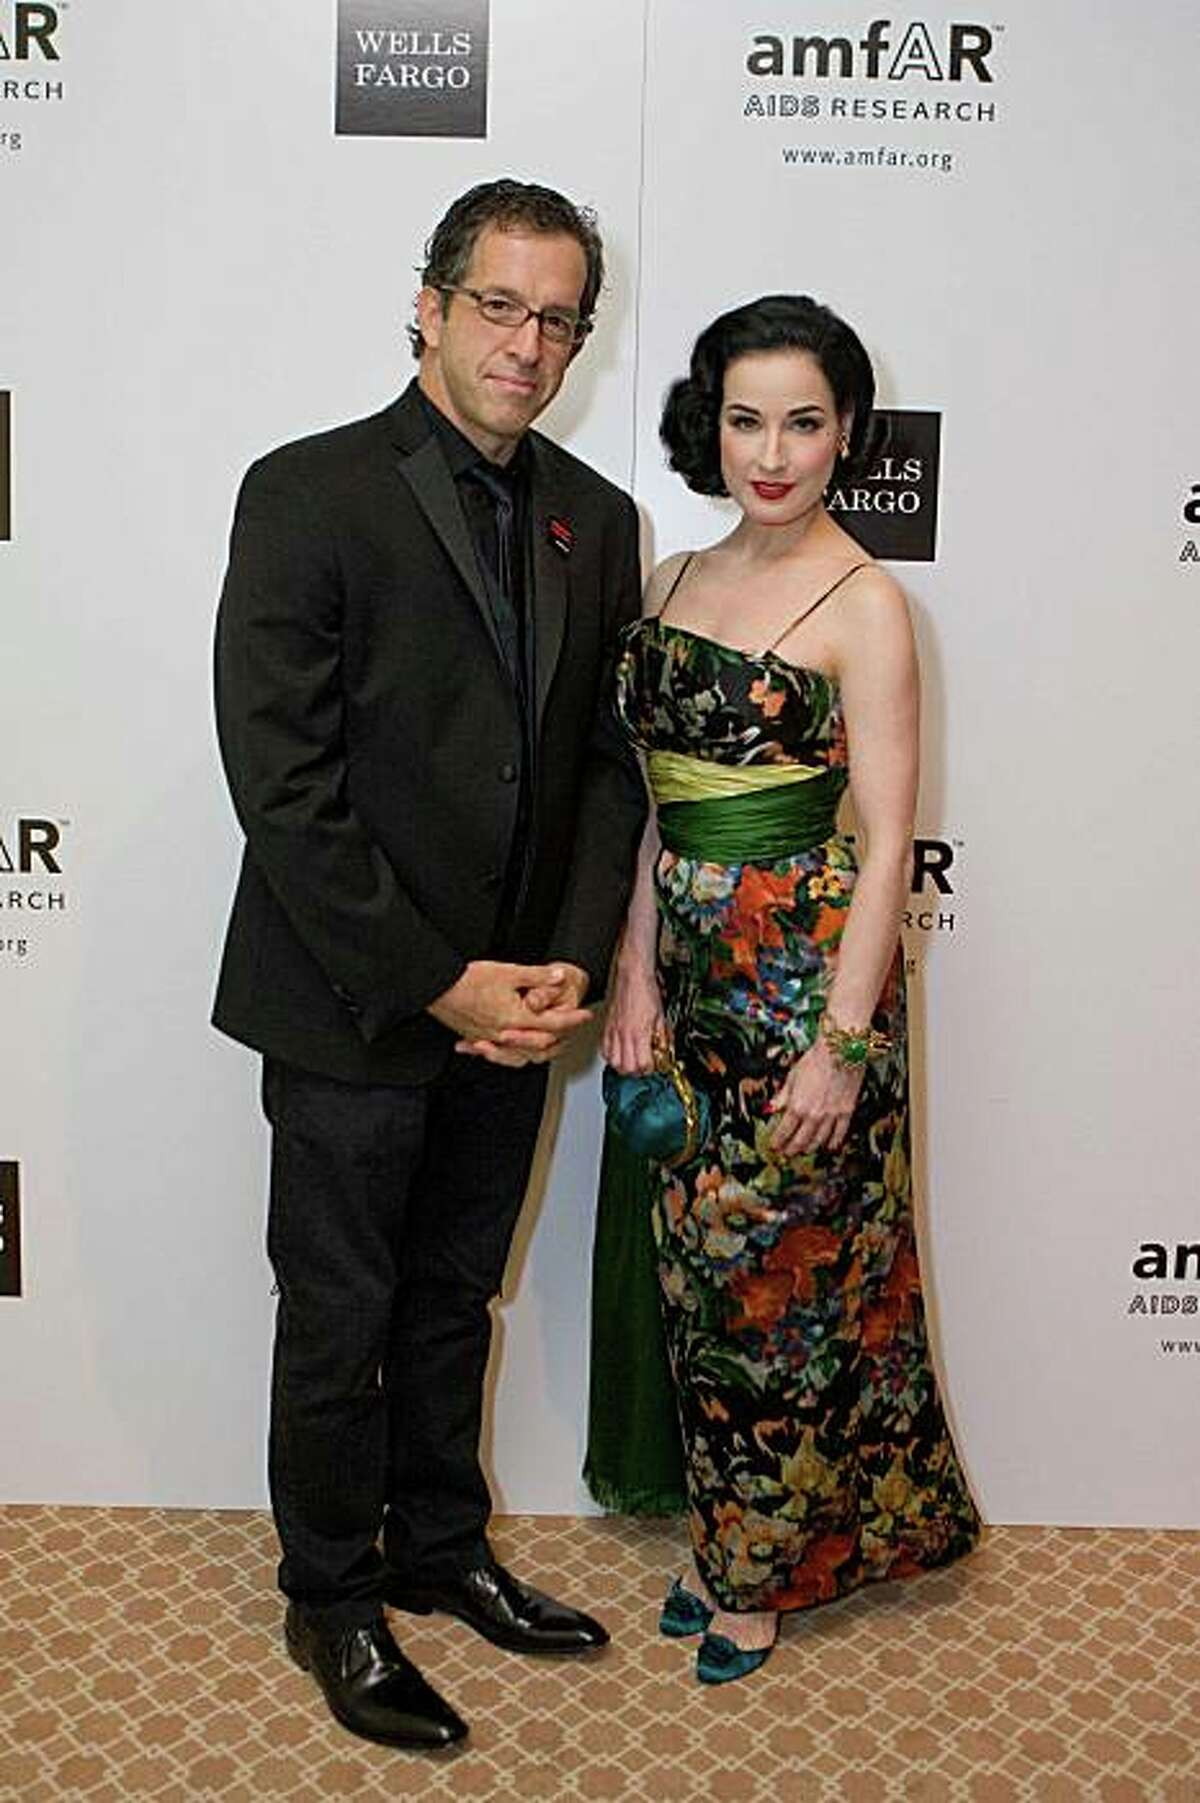 AmFar's 10th annual San Francisco Gala was held Nov. 15 at the Four Seasons. Designer Kenneth Cole (left) handed awards to burlesque performer Dita Von Teese (right) and Dr. Mervyn Silverman (not pictured) for their work in education and prevention of HIV and AIDS. Kenneth Cole, Dita Von Teese